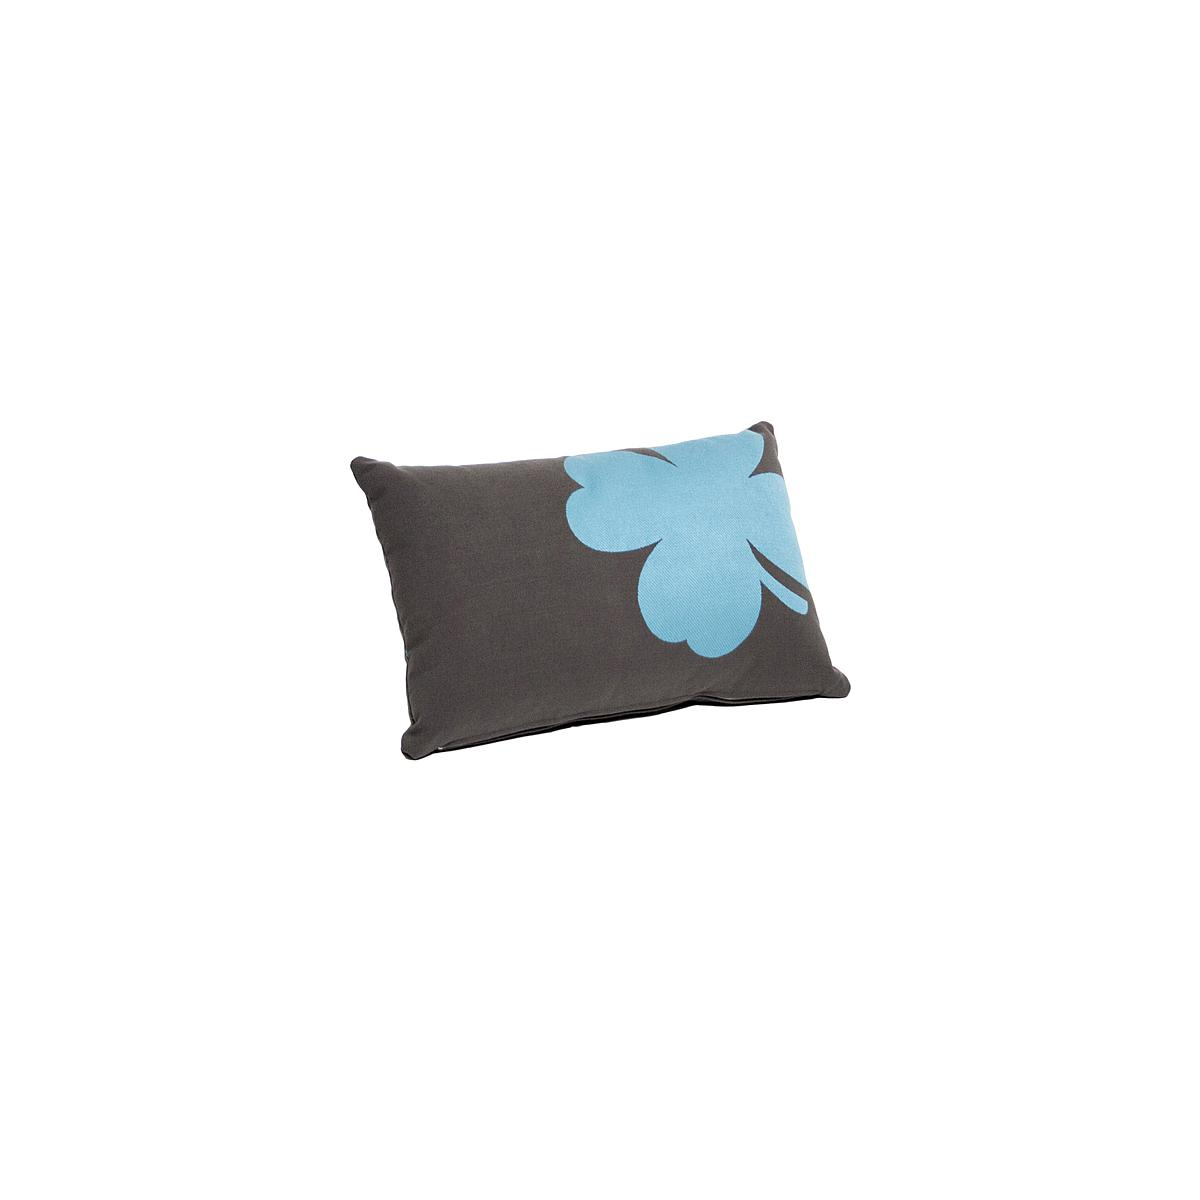 TREFLE by Fermob Coussin 44x30 cm gris Carbone